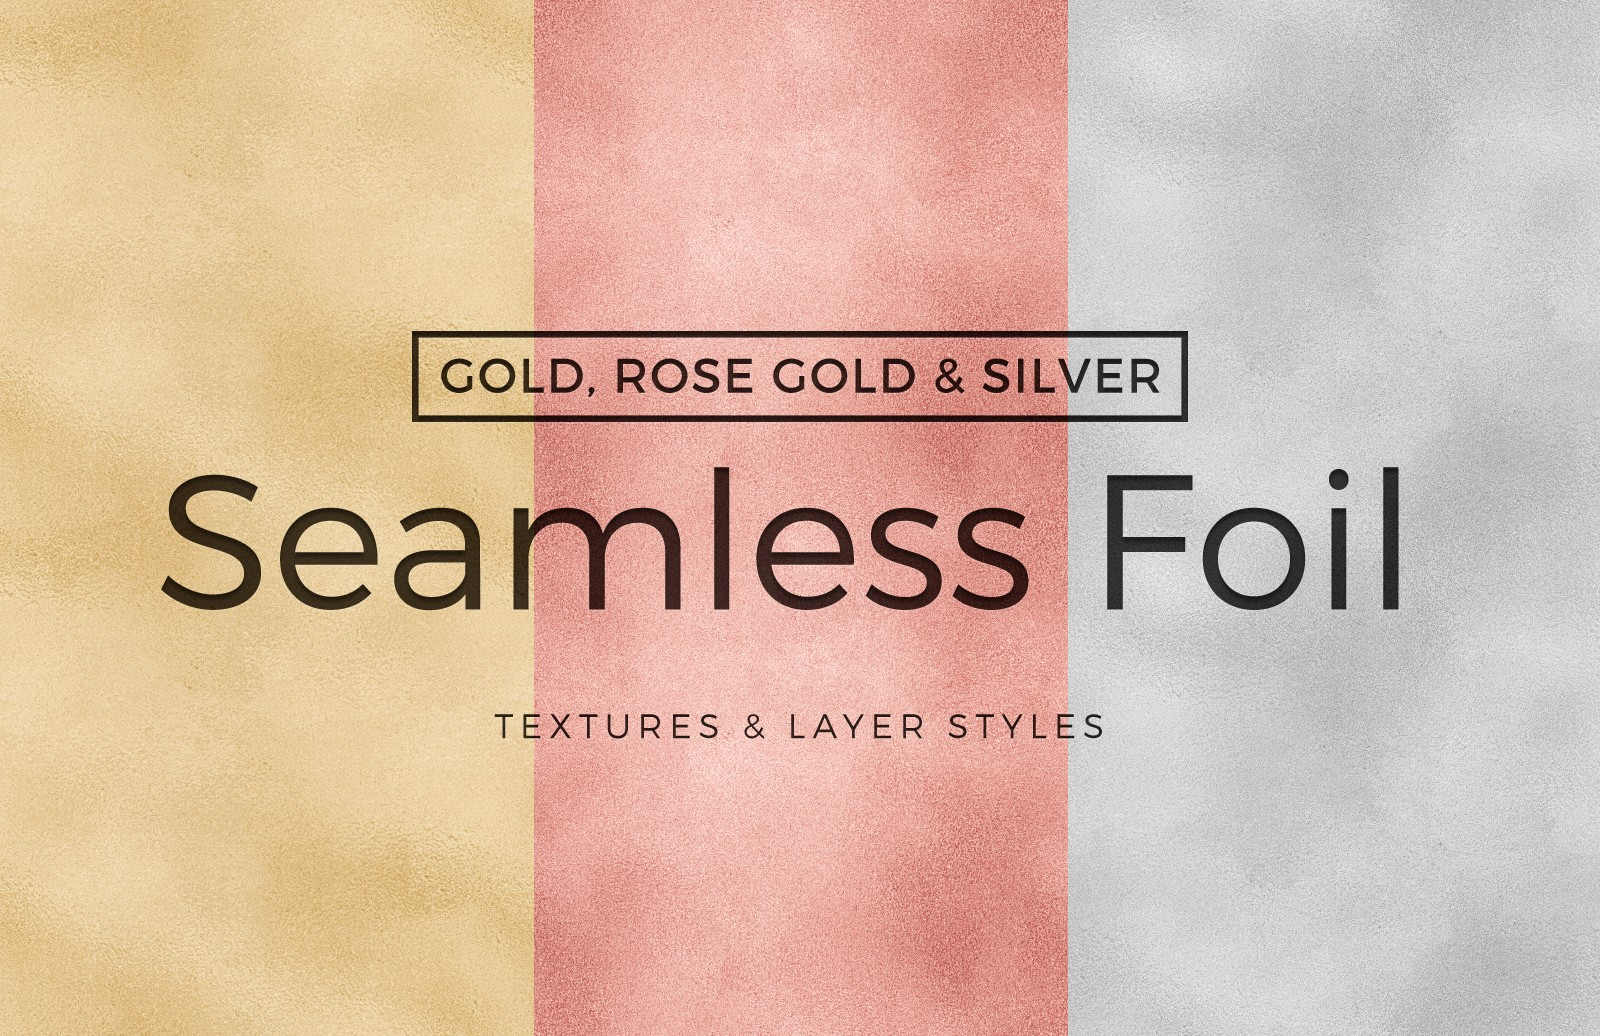 Seamless Foil Textures & Layer Styles 1